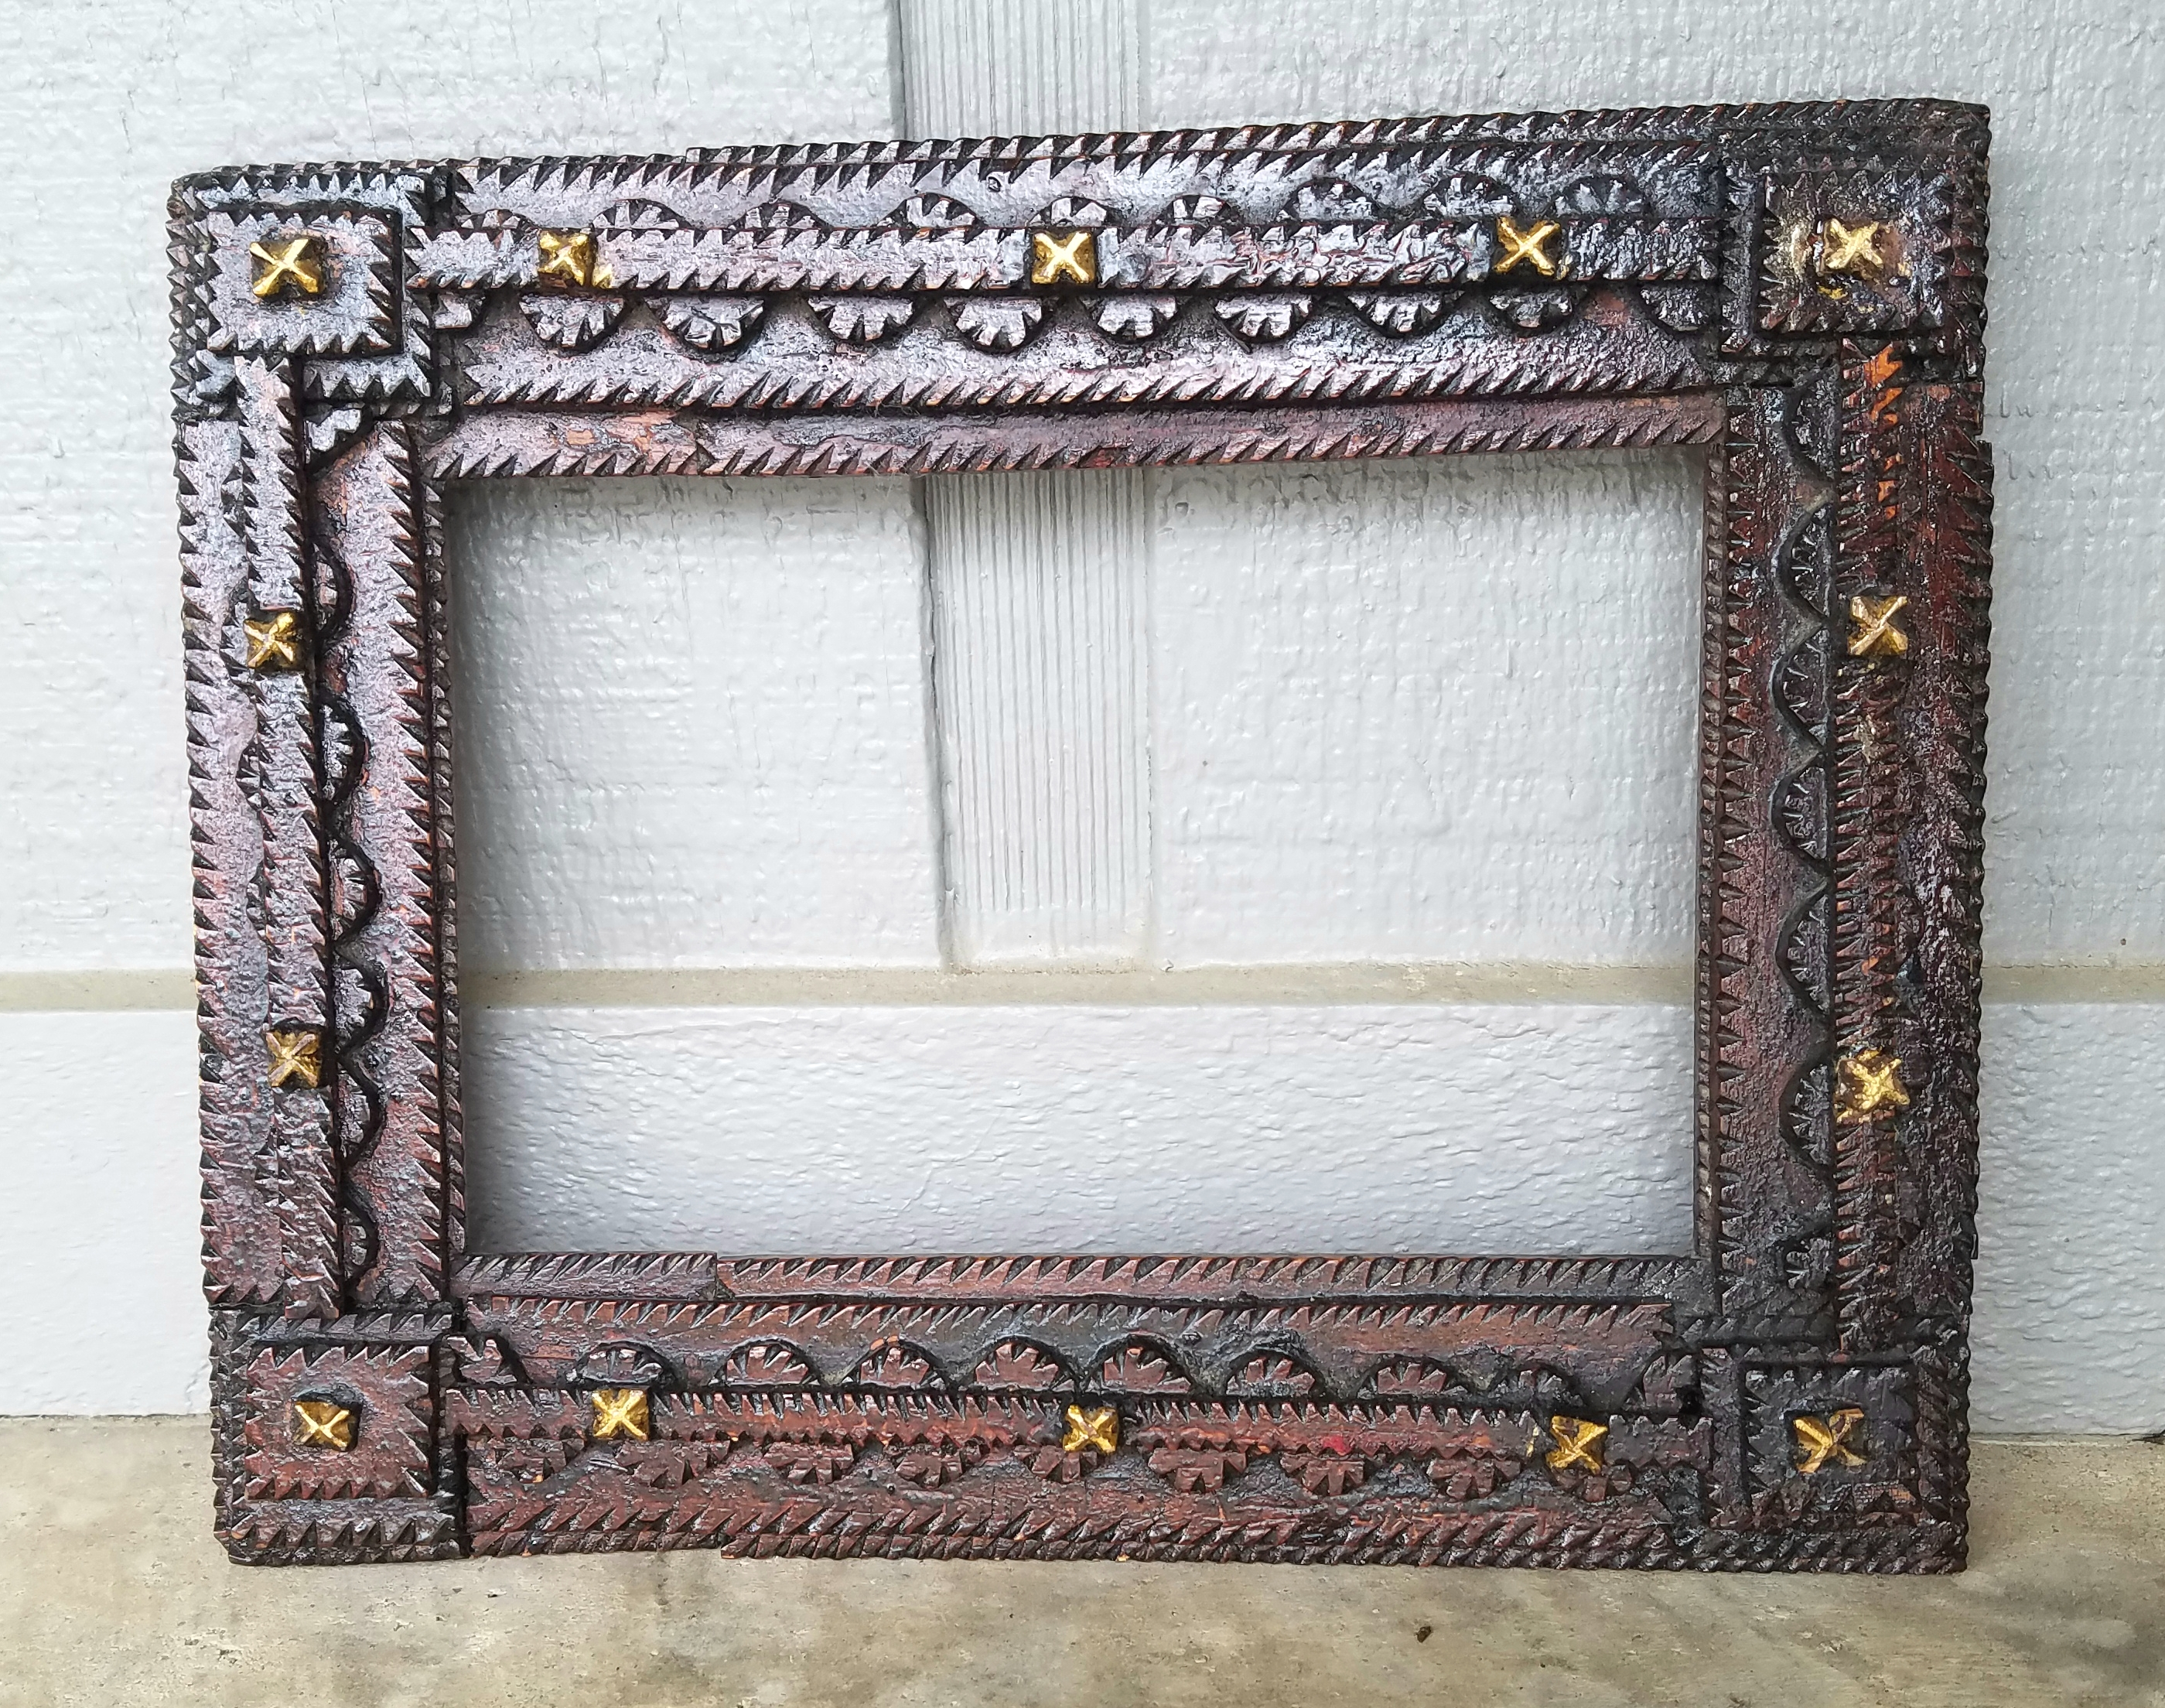 Early 1900s Tramp Art Frame | Zachary Miller Antiques